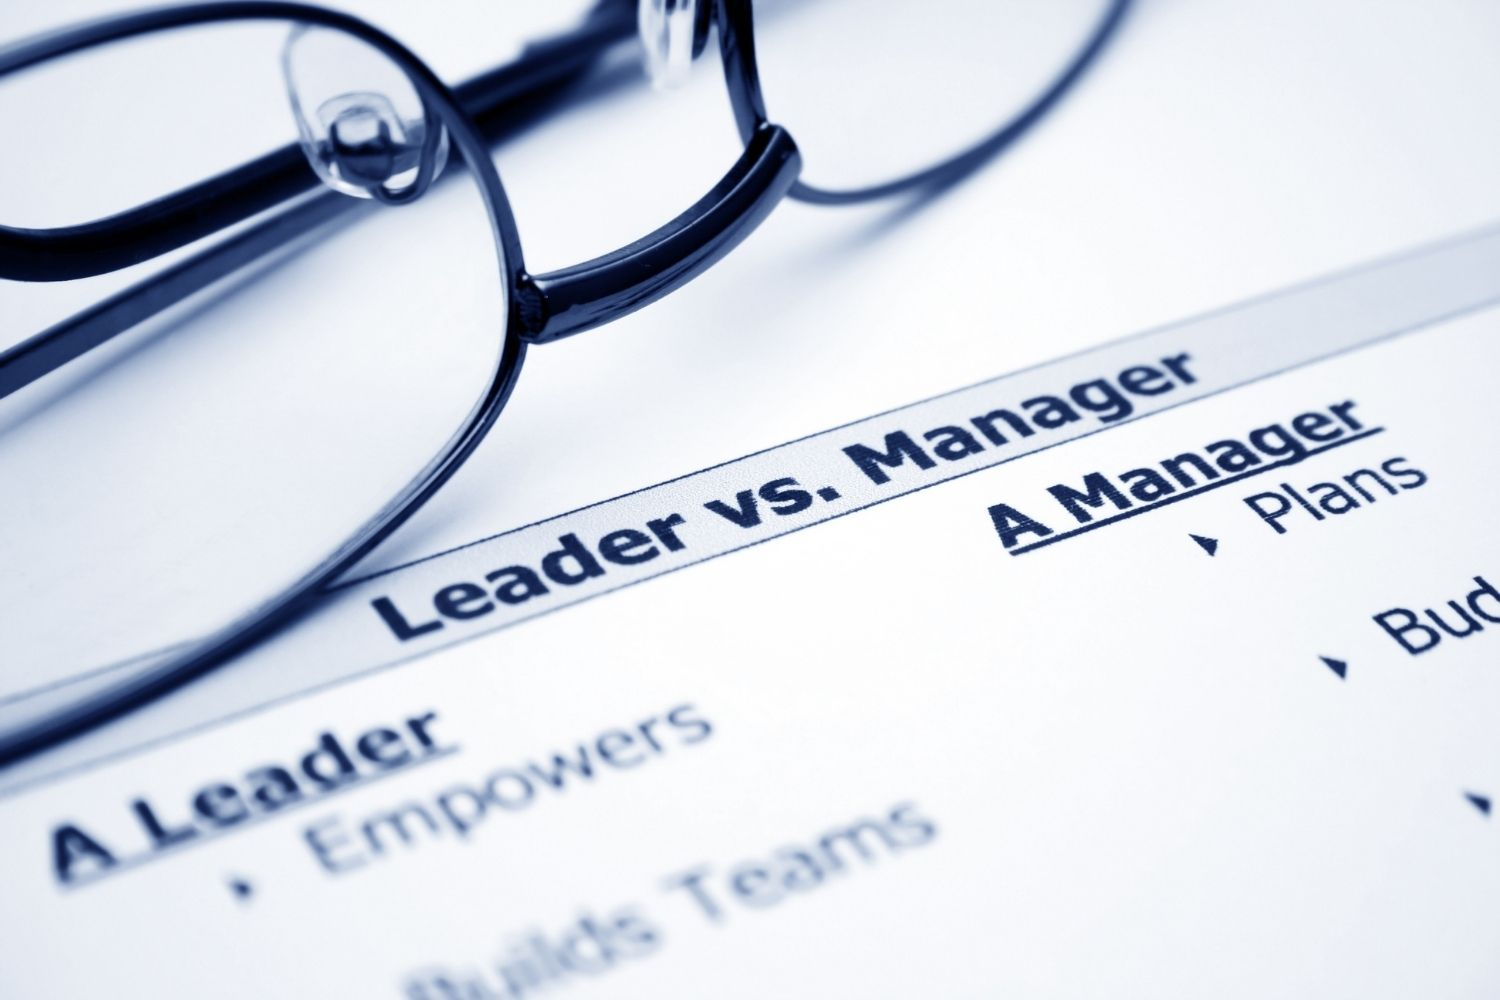 Learn what it takes to become an effective leader that uses the art of people management and emotional intelligence